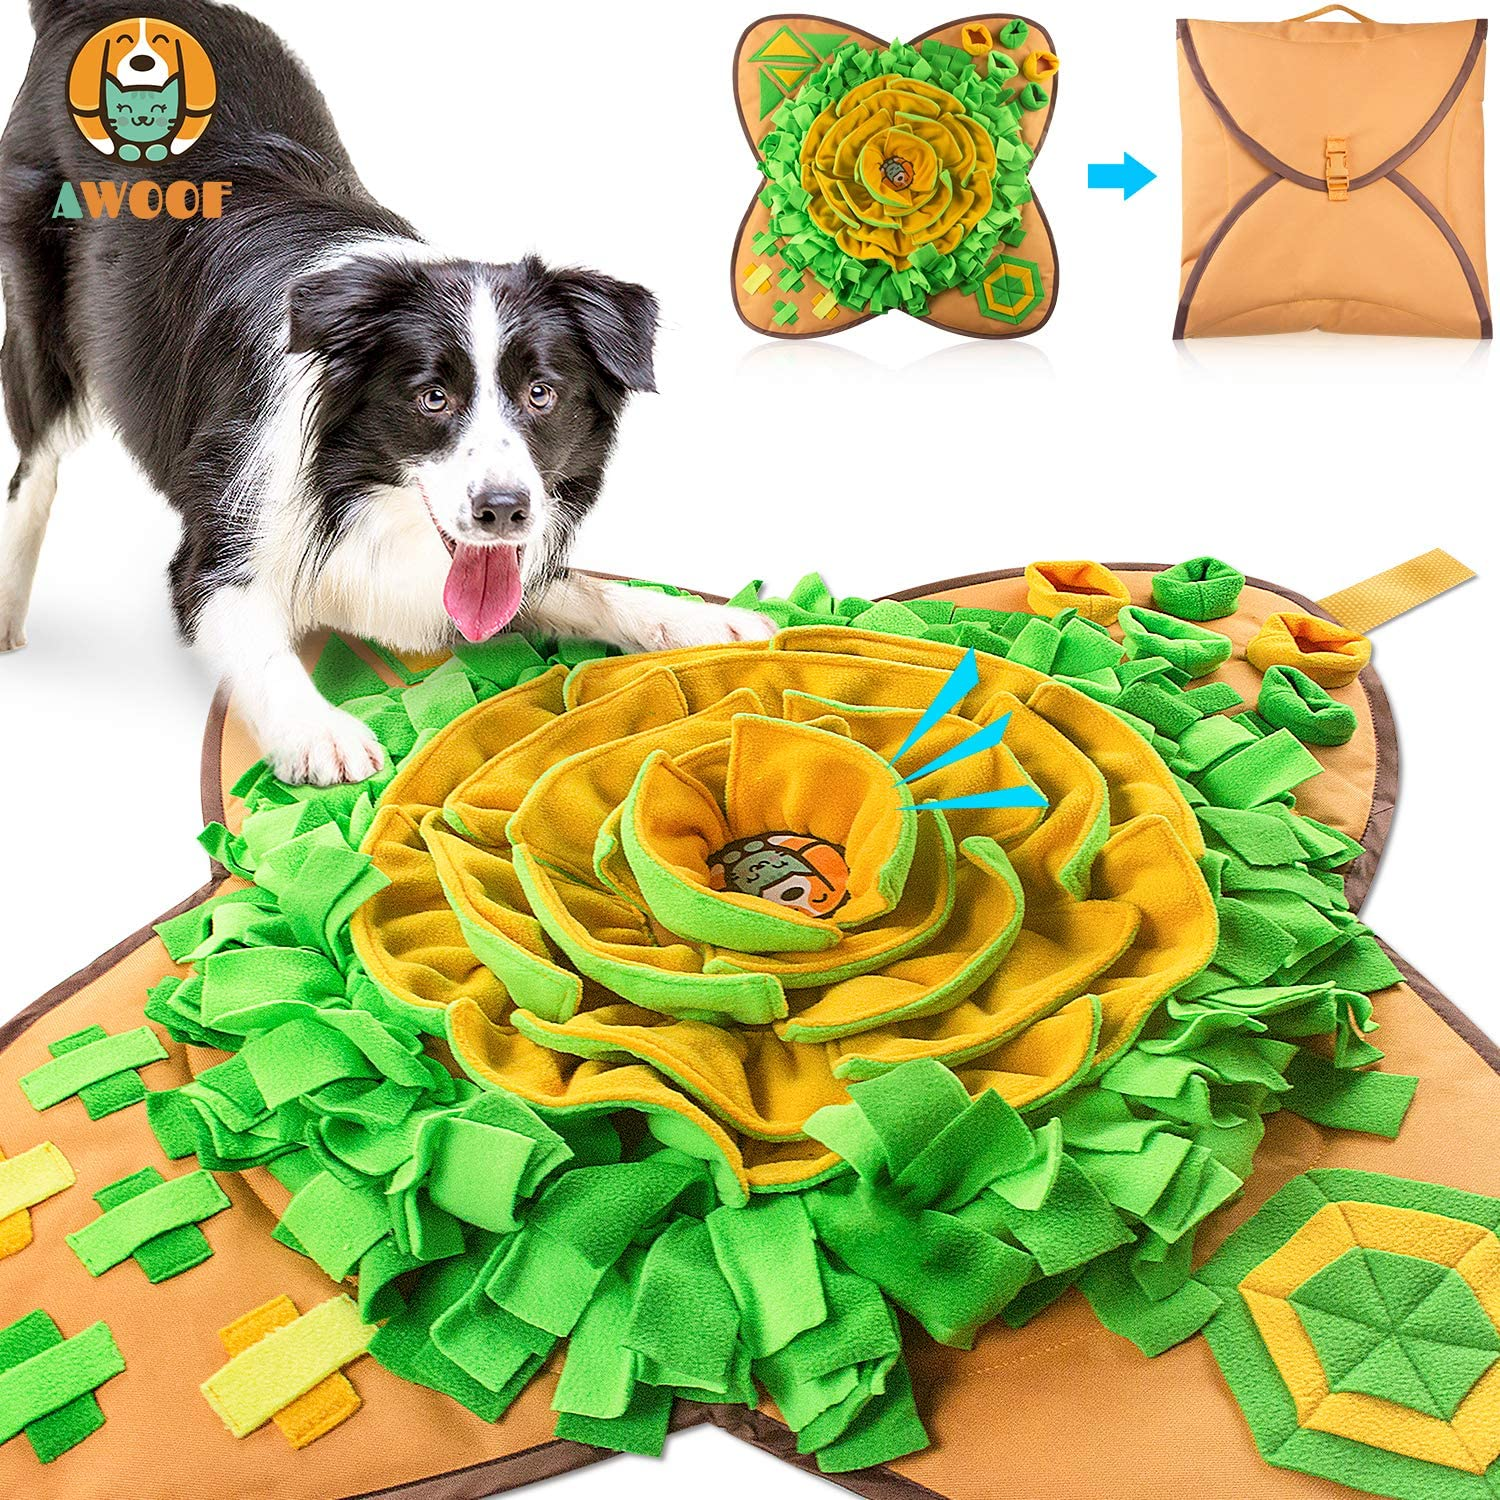 AWOOF Snuffle Mat Pet Dog Feeding Mat, Durable Indestructible Interactive Puzzle Dog Toys Encourages Natural Foraging Skills